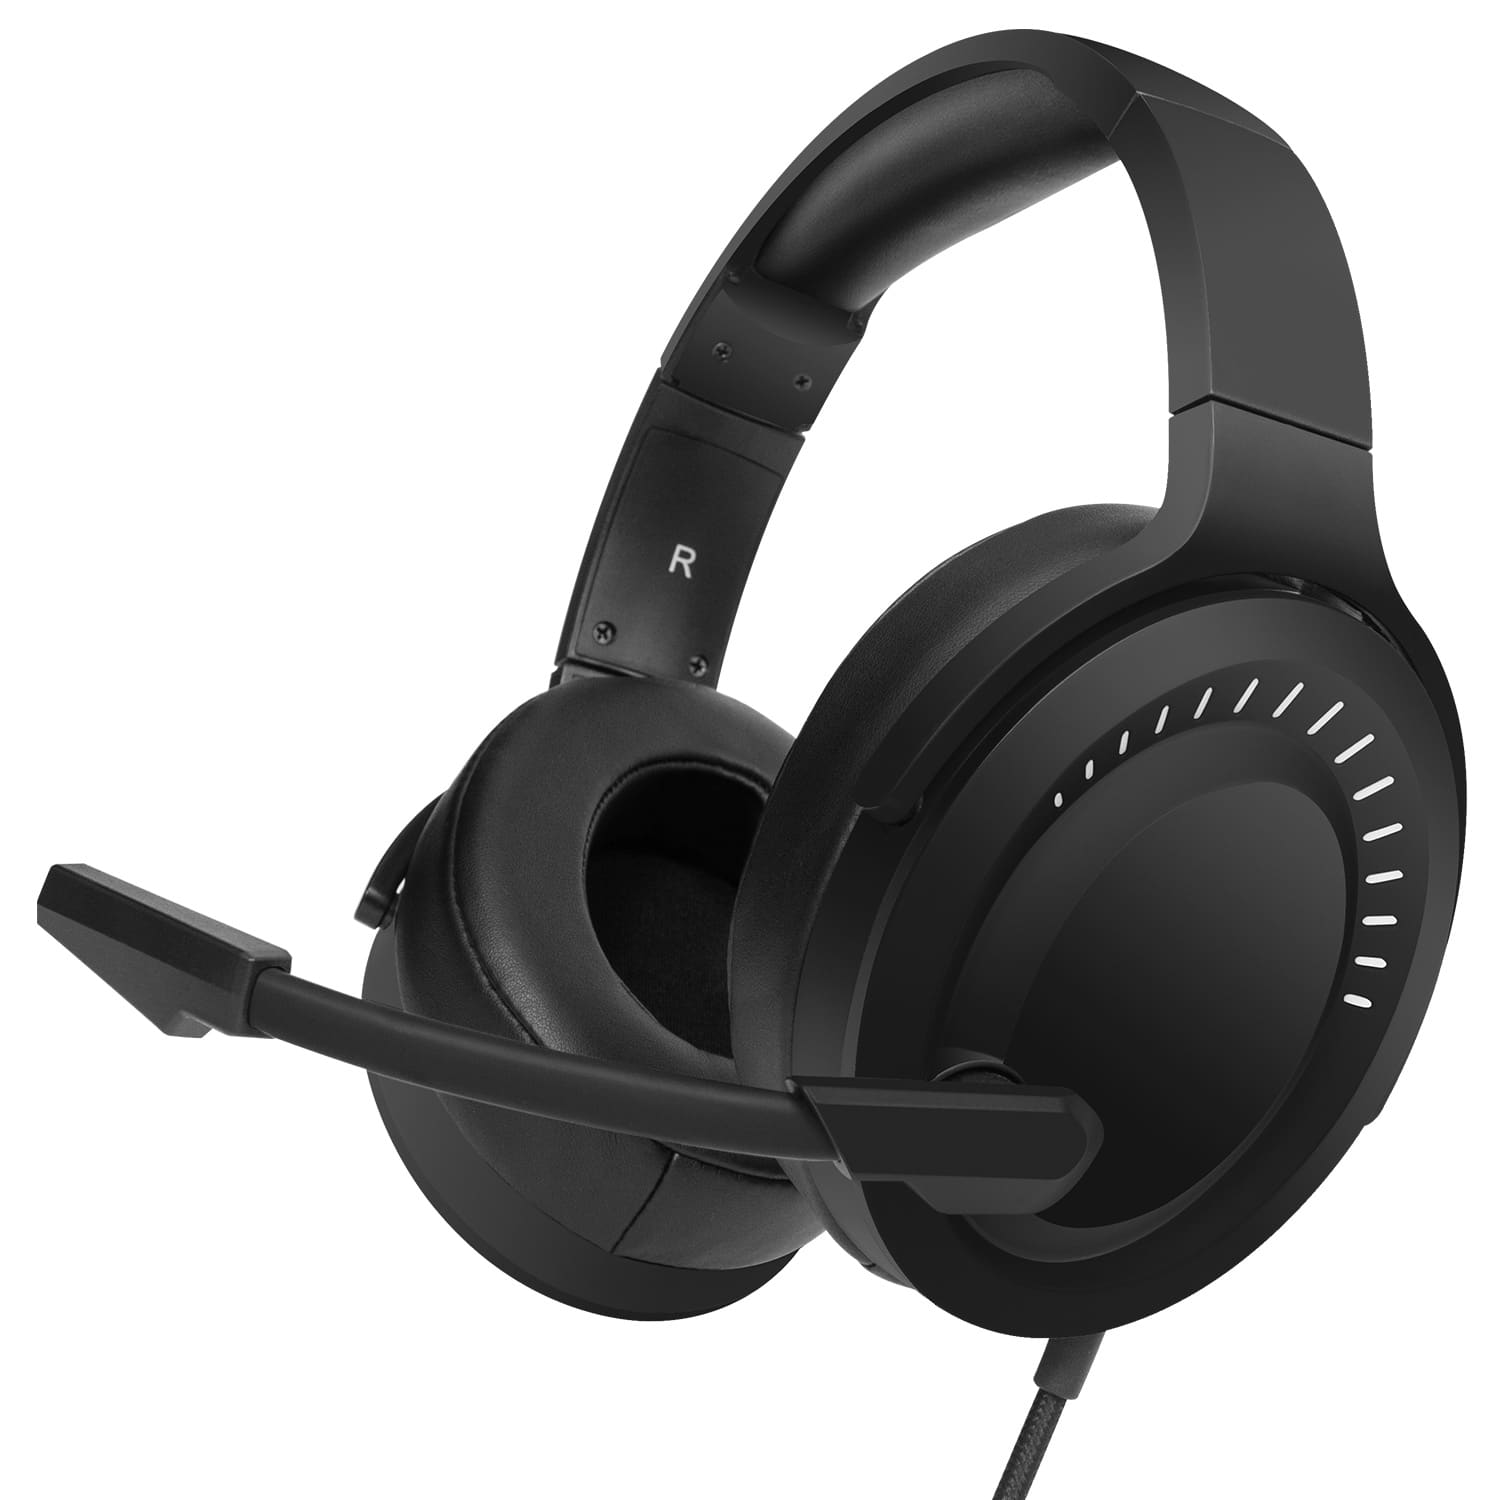 NUBWO Gaming Headset, Over-Ear Stereo Gaming Headphones with Uni-Directional Microphone for PC, Computer, Laptop, PS4, Xbox One, Nintendo Switch, Mac, iPad $18.69